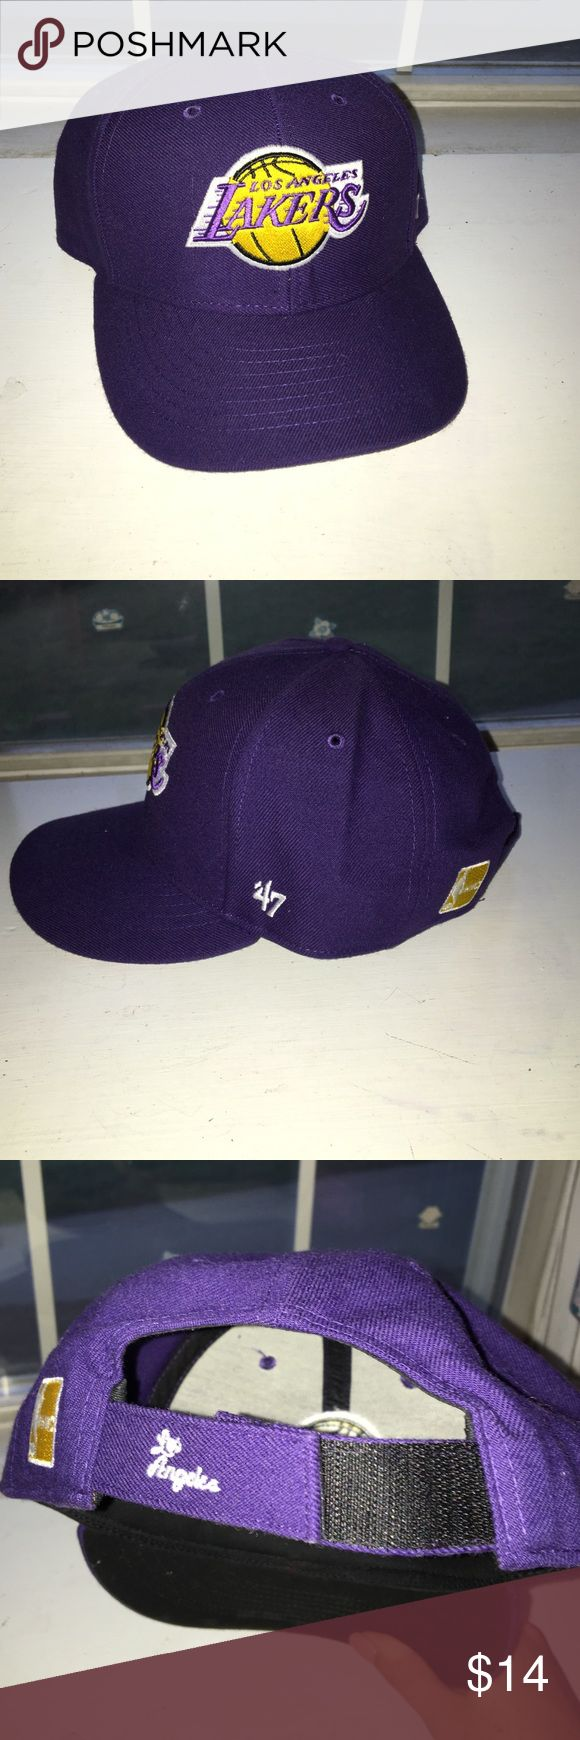 Los Angeles Lakers Baseball cap New, never worn purple LA lakers hat 47 Accessories Hats